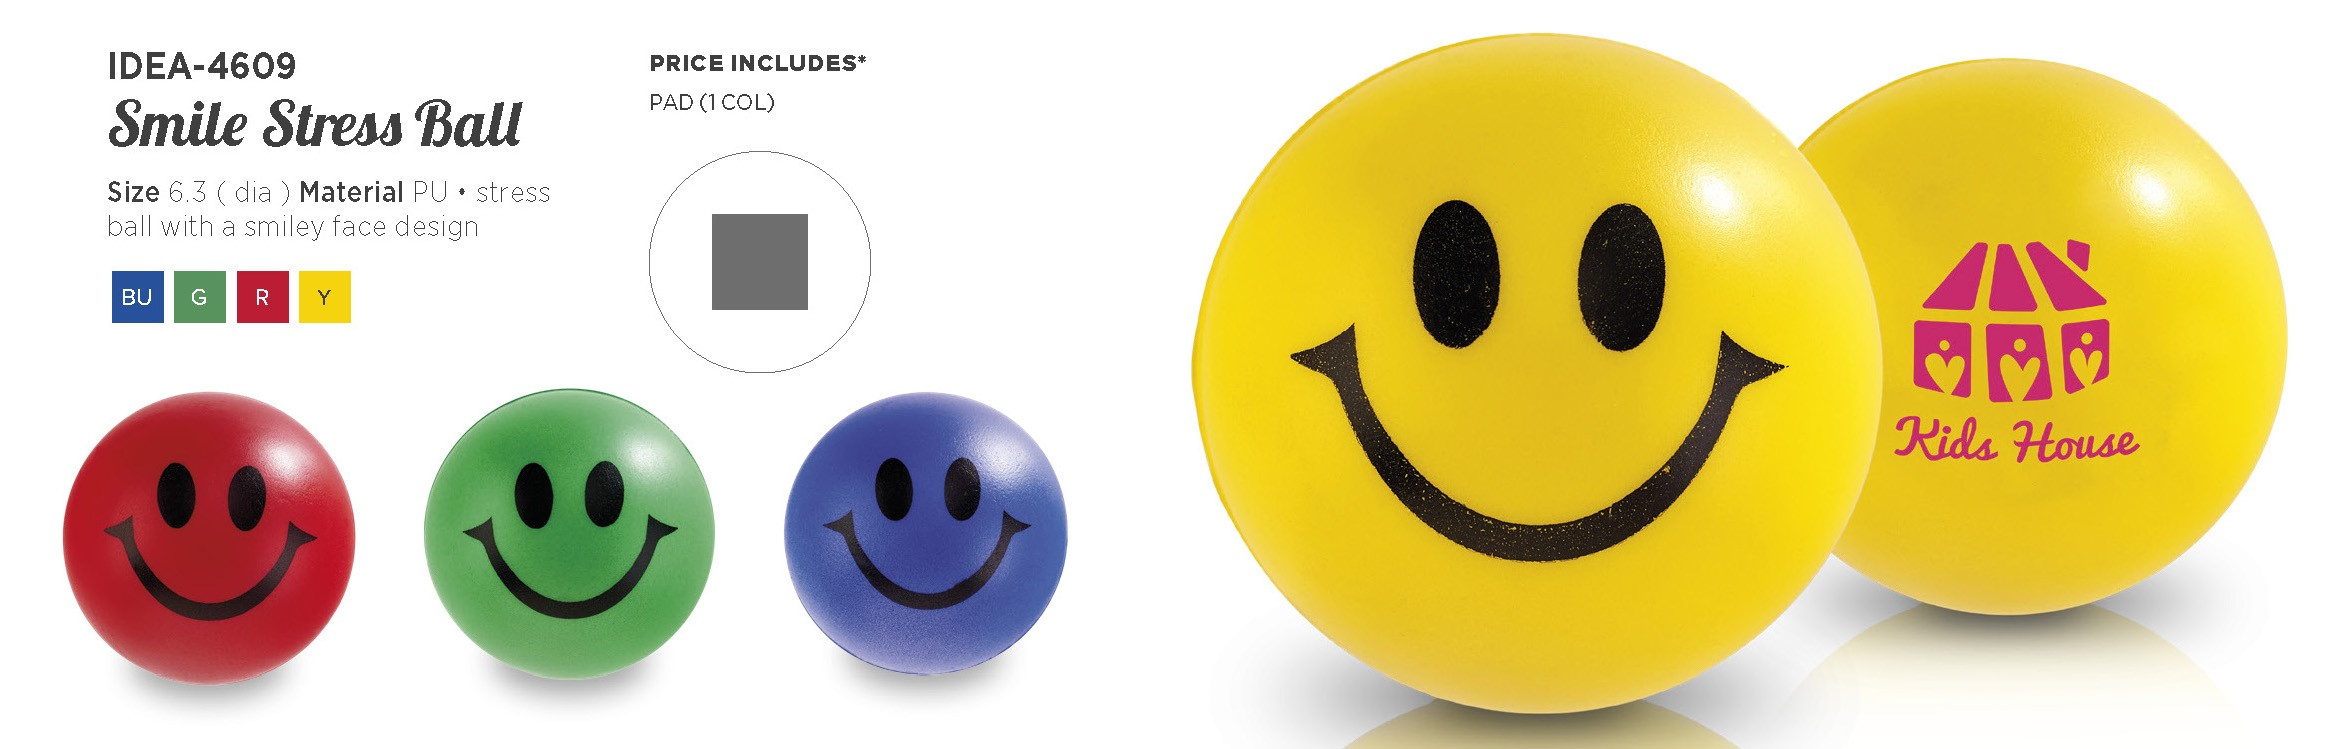 Product: Smile Stress Ball